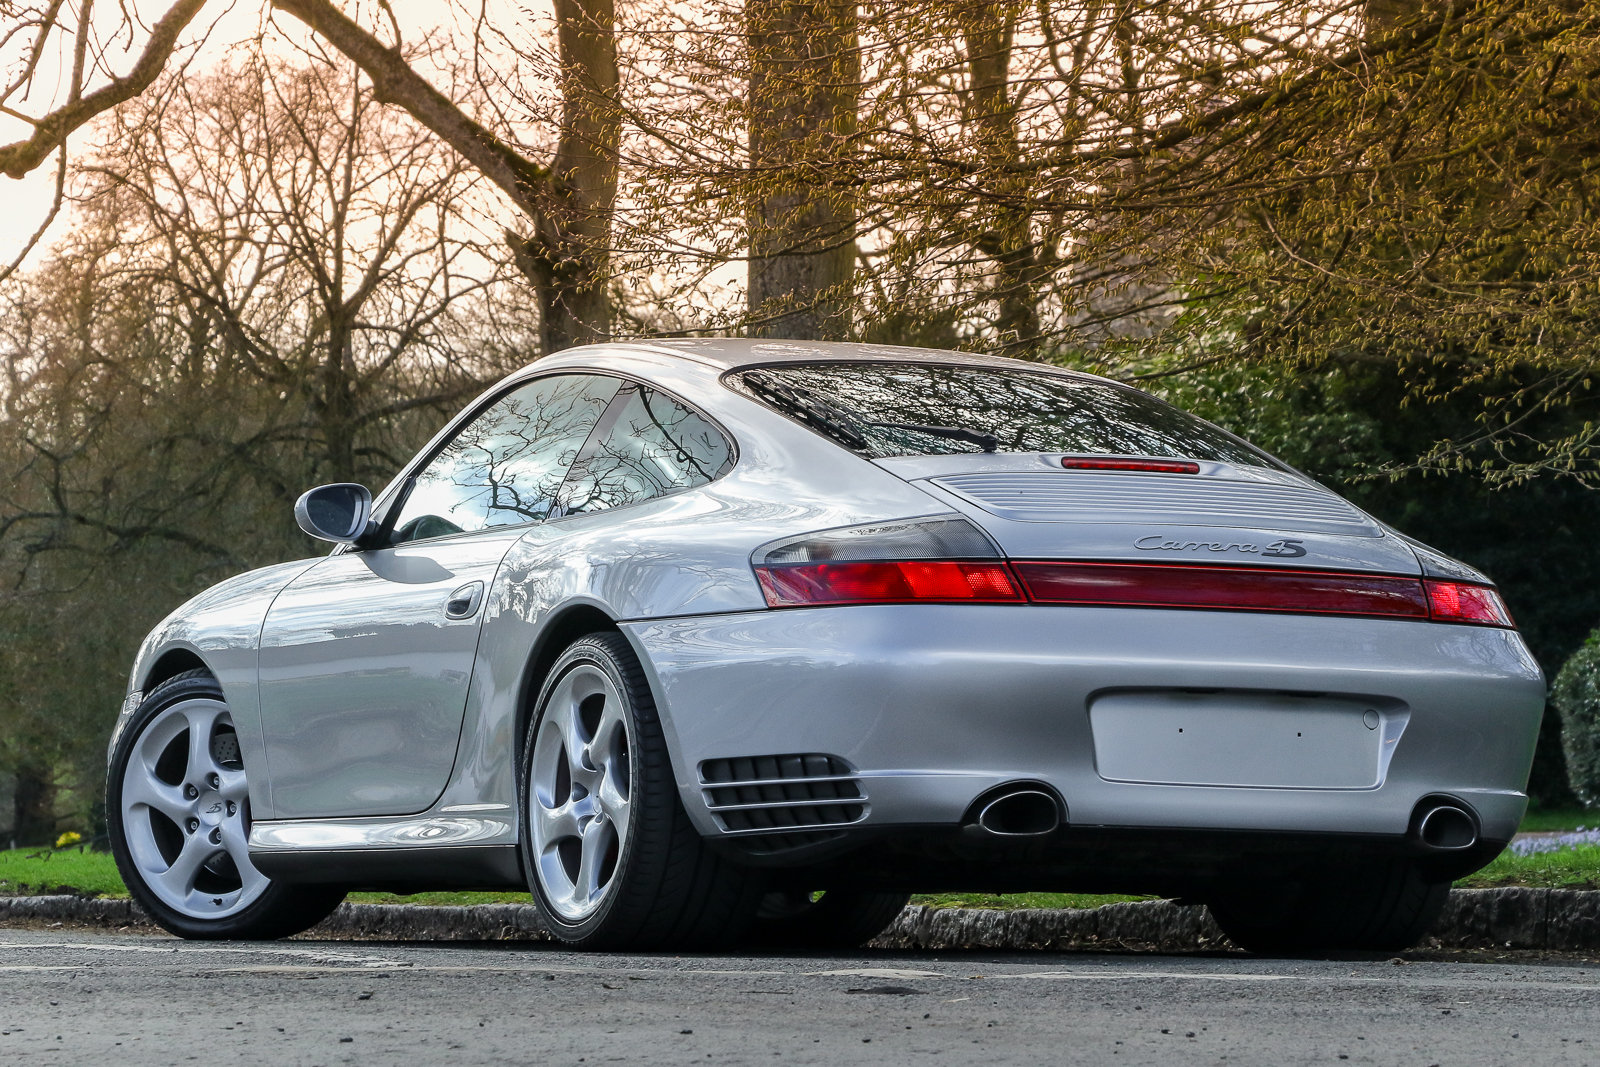 2002 Porsche 911 Carrera 4S 6-Speed Manual 996 FSH For Sale (picture 1 of 6)